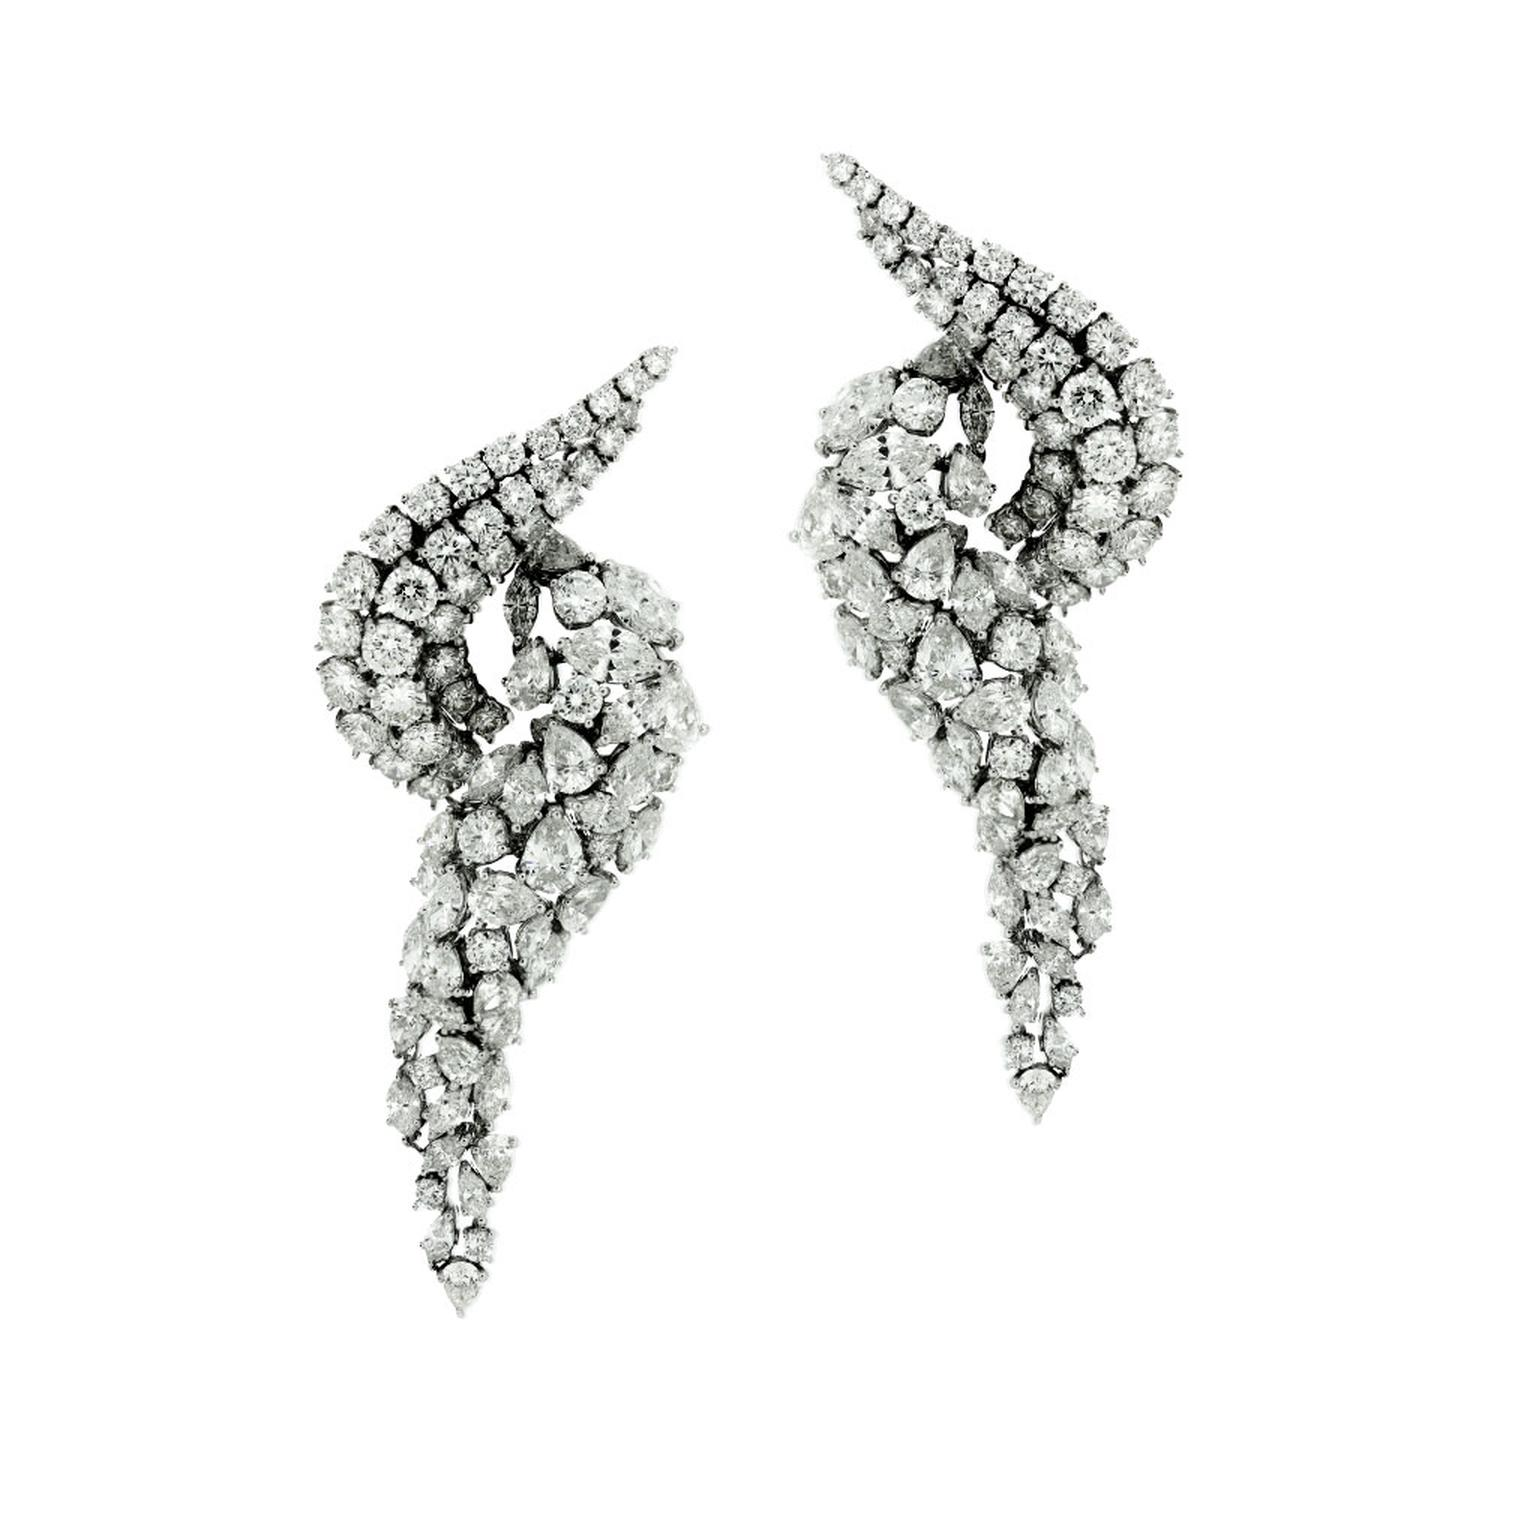 SARA Joias diamond earrings